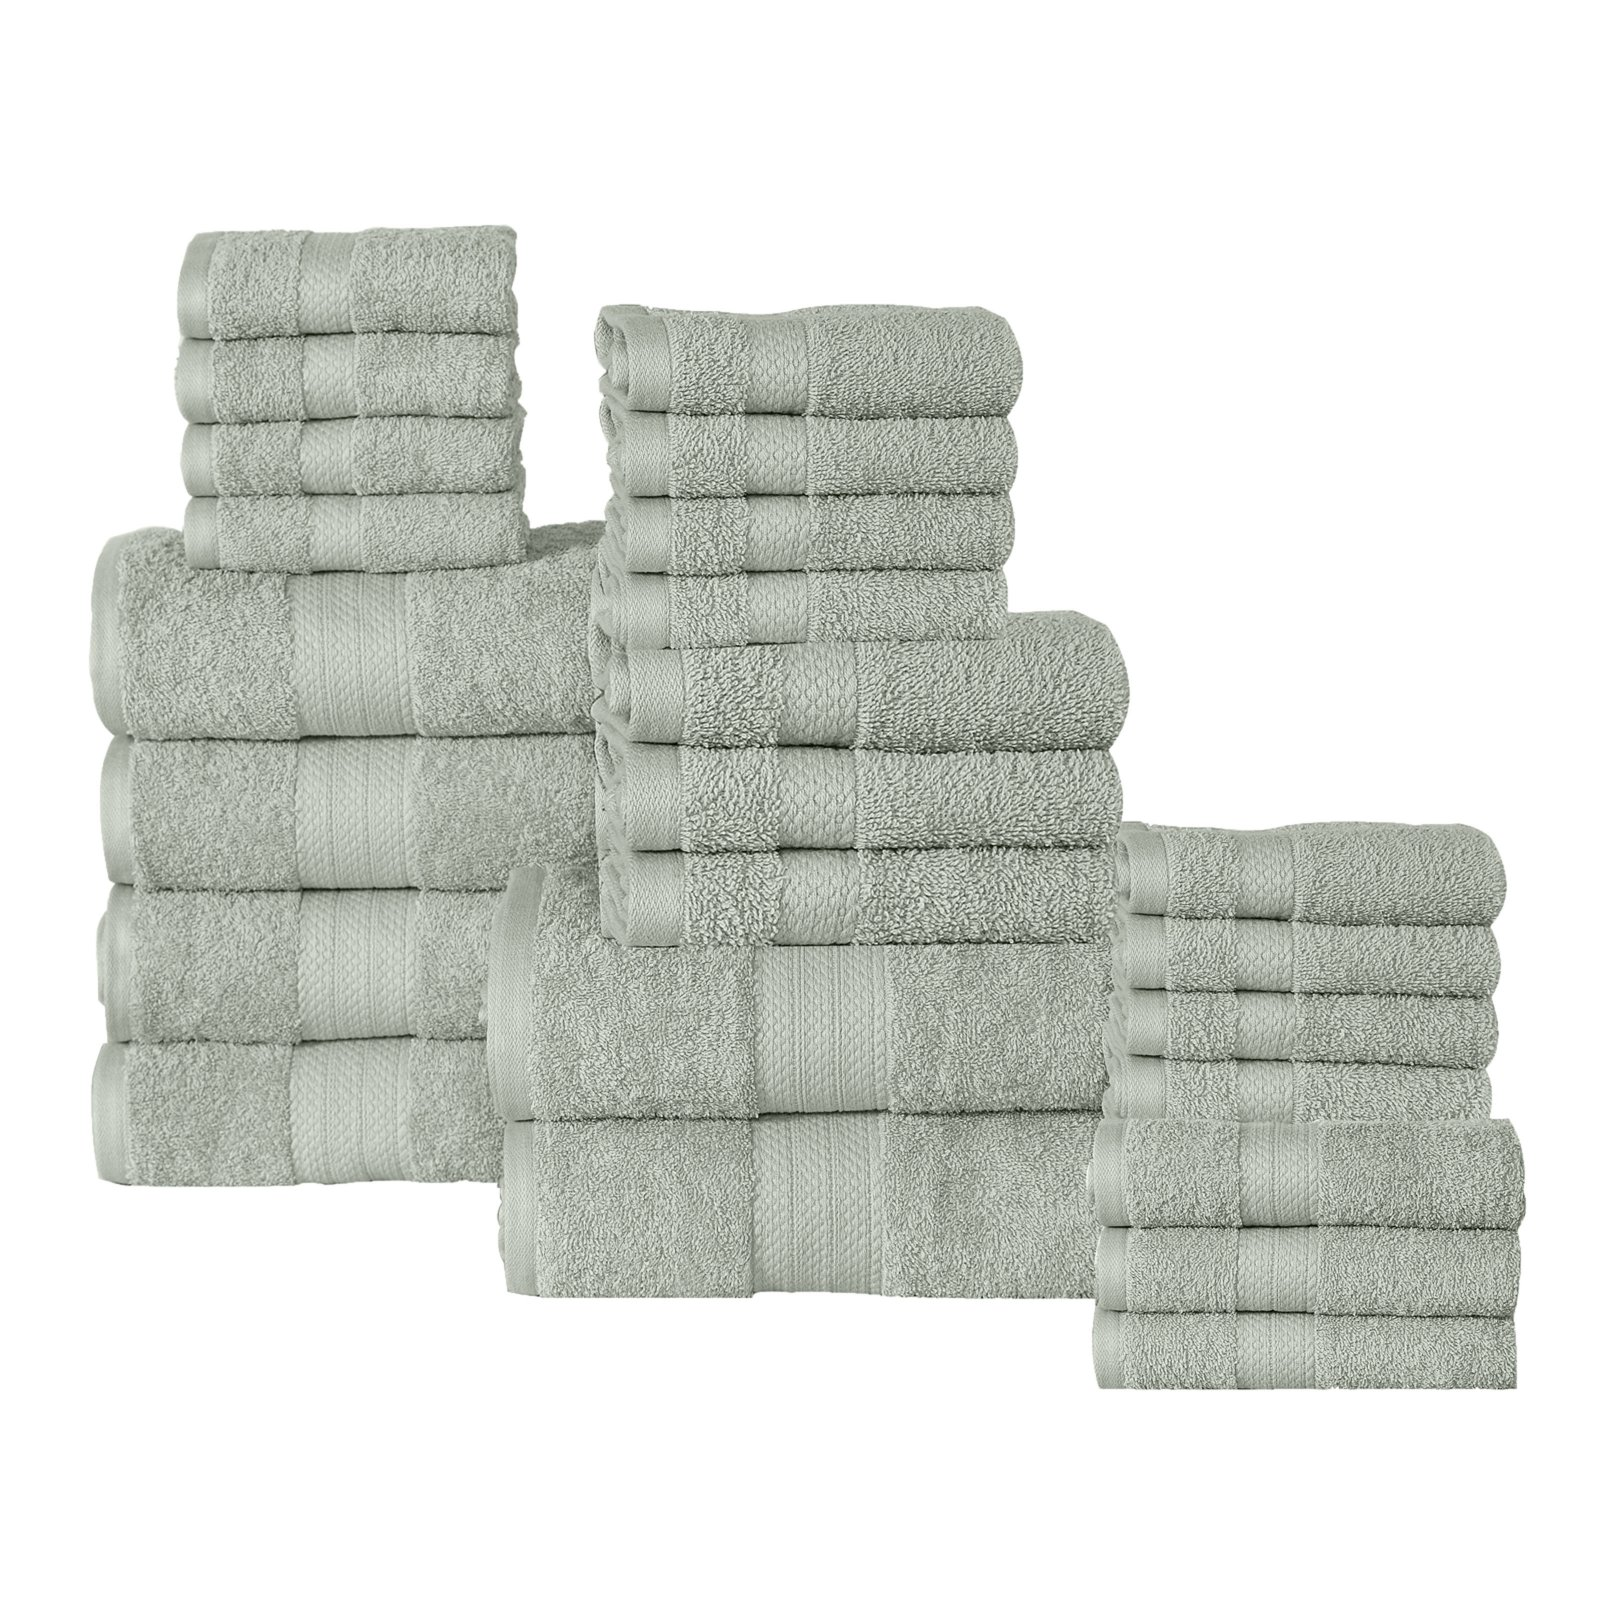 Affinity Linens 24 Piece Plush Cotton Bath Towel Set